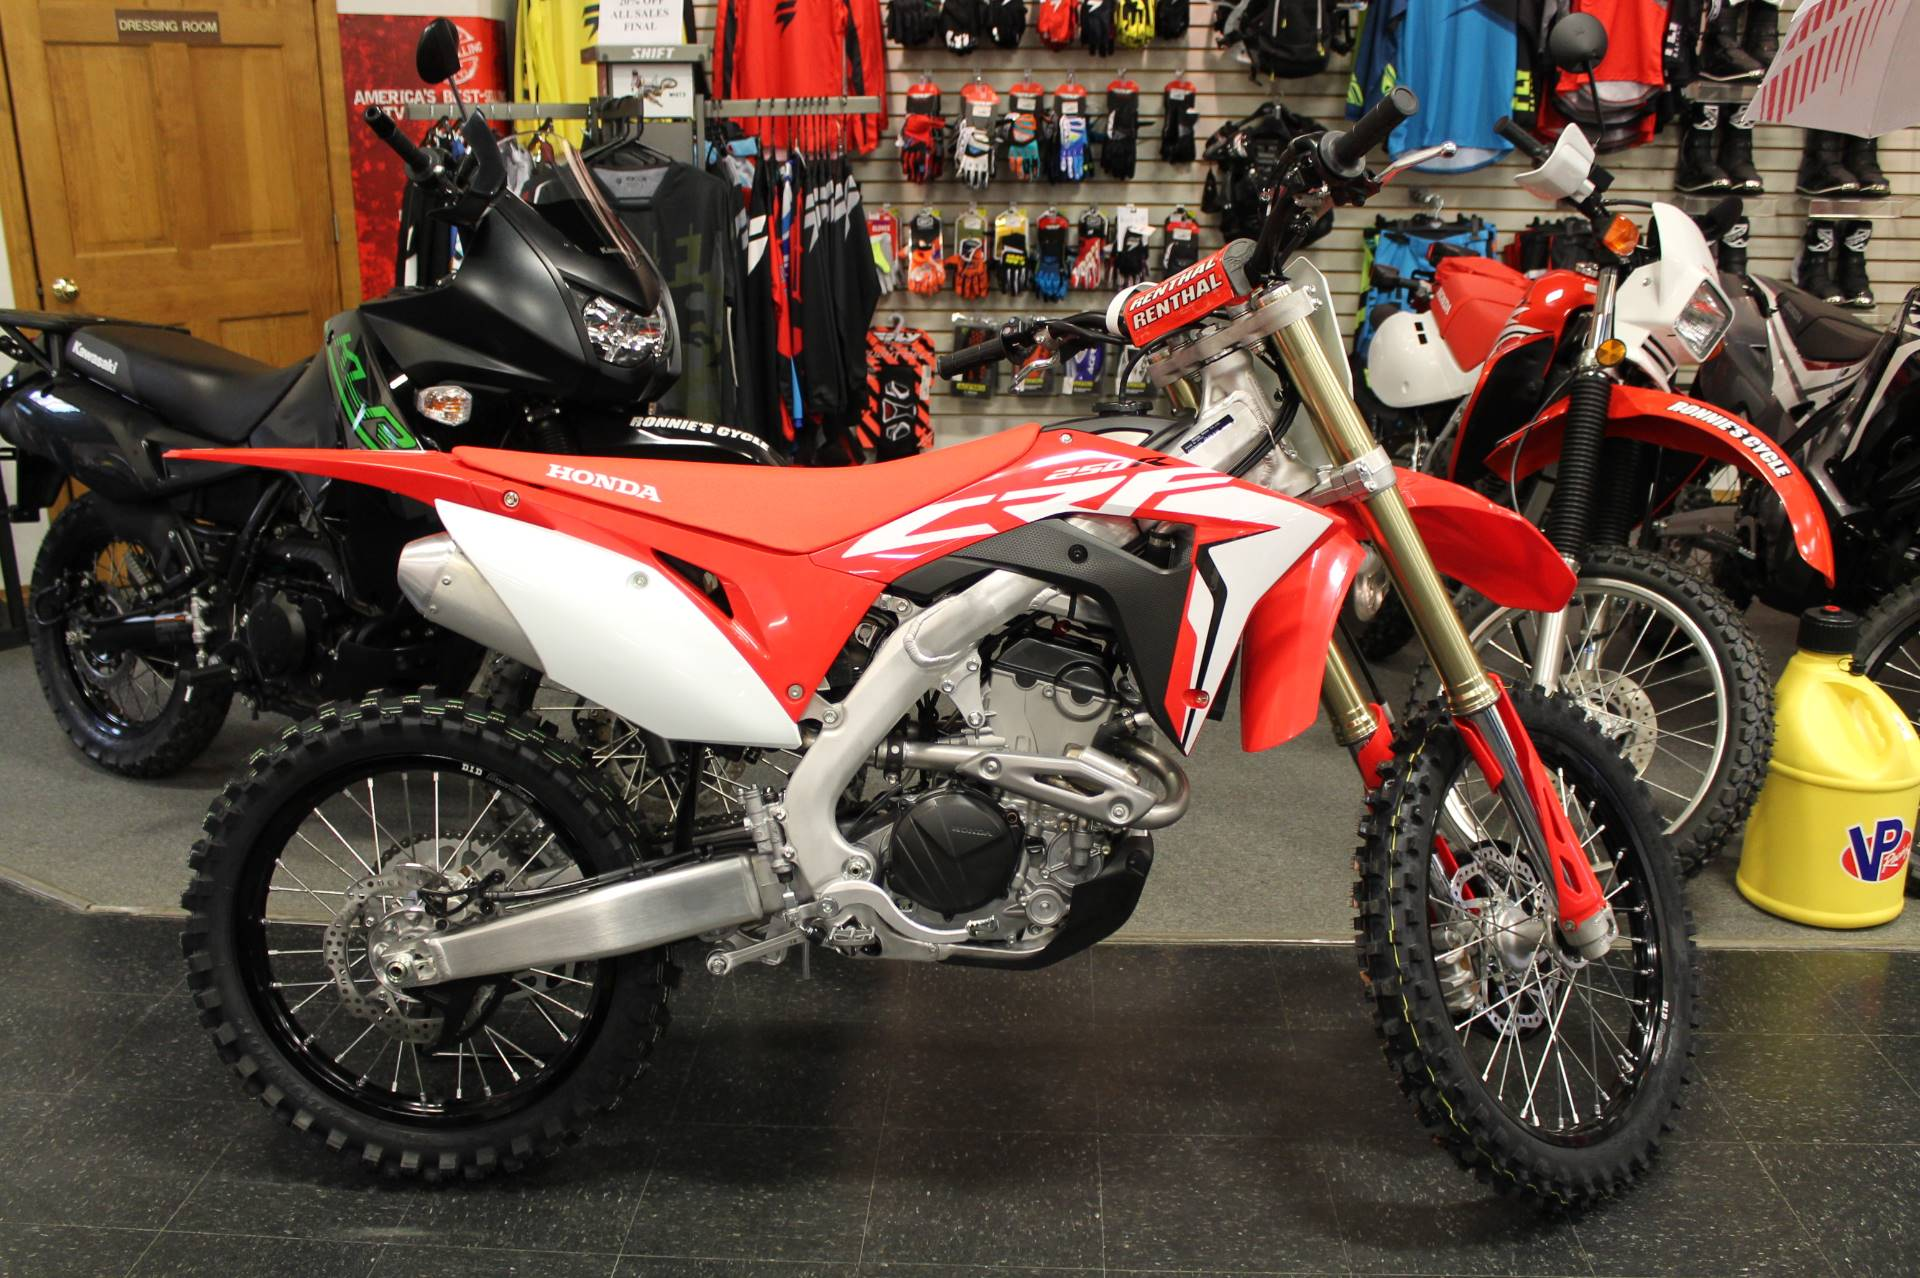 New 2019 Honda Crf250r Motorcycles In Adams Ma Stock Number 100614